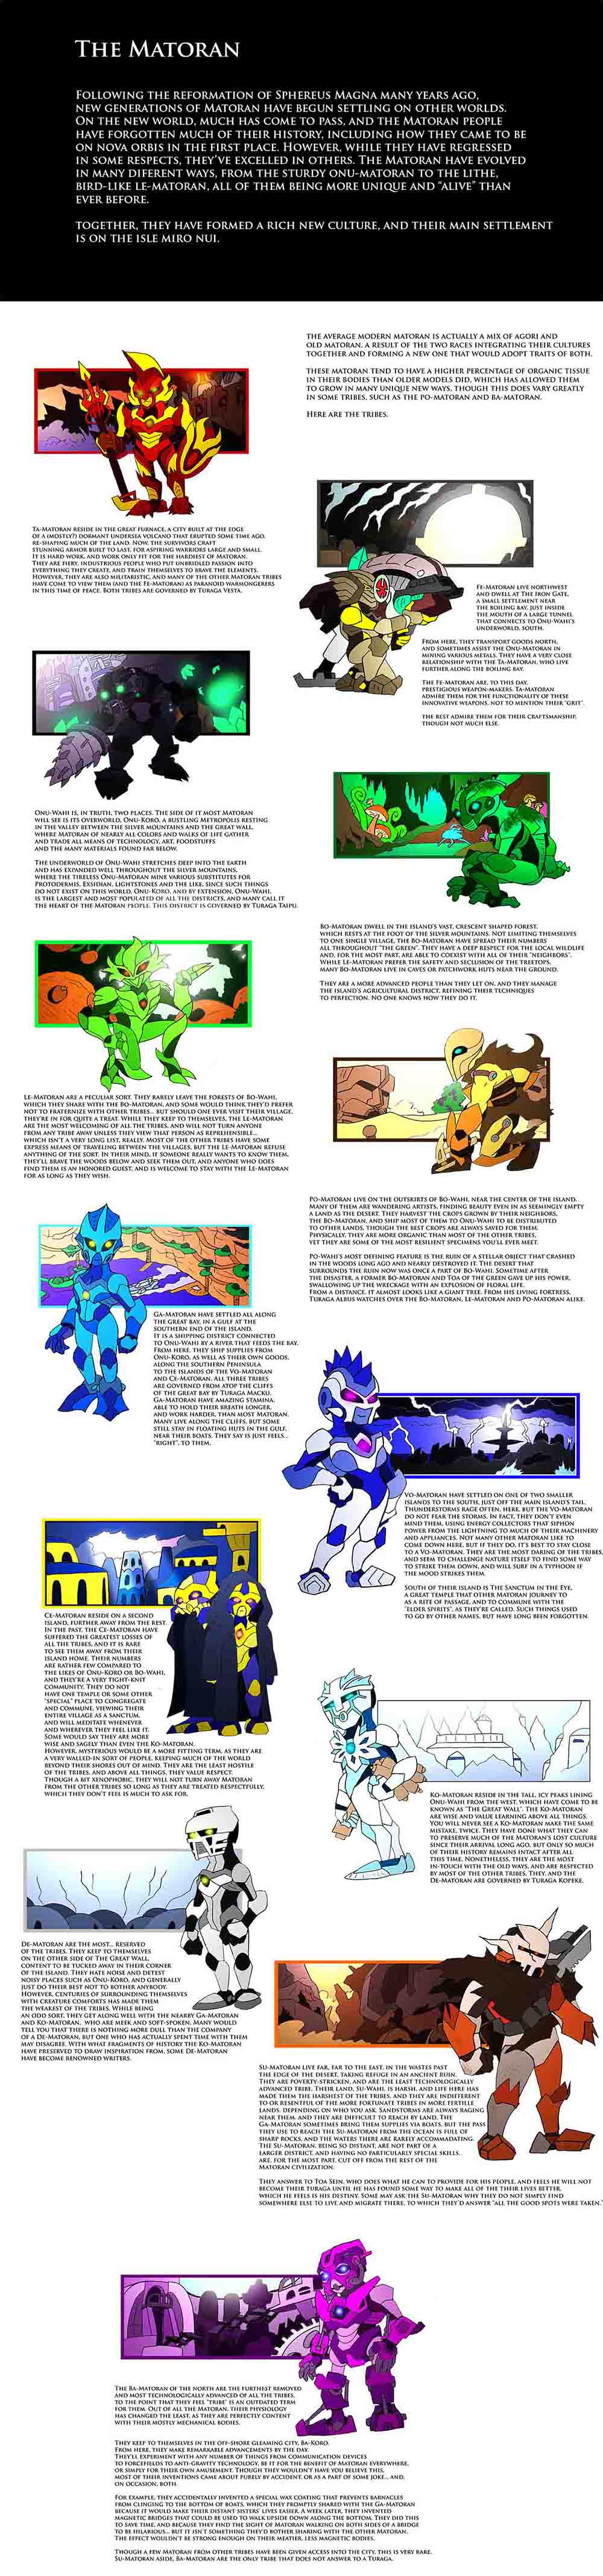 the_matoran_by_nickinamerica-d6xue78.jpg